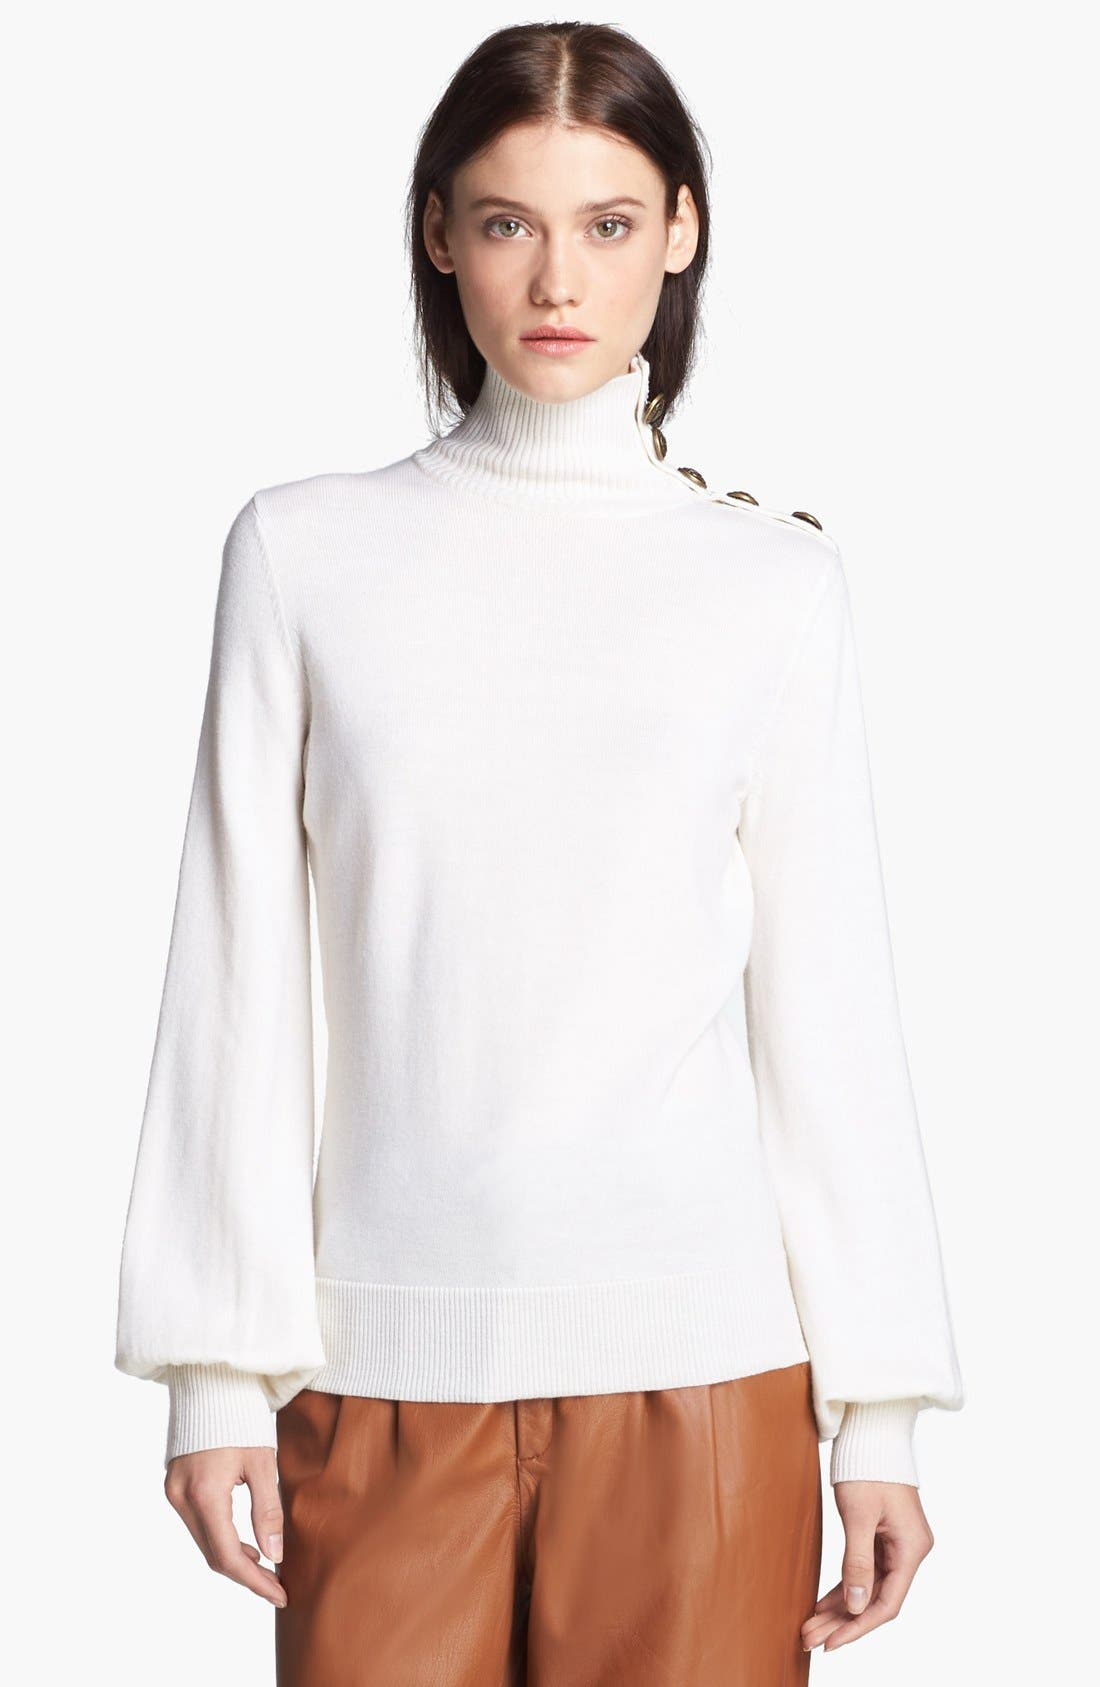 Alternate Image 1 Selected - Rachel Zoe 'Margo' Turtleneck Sweater